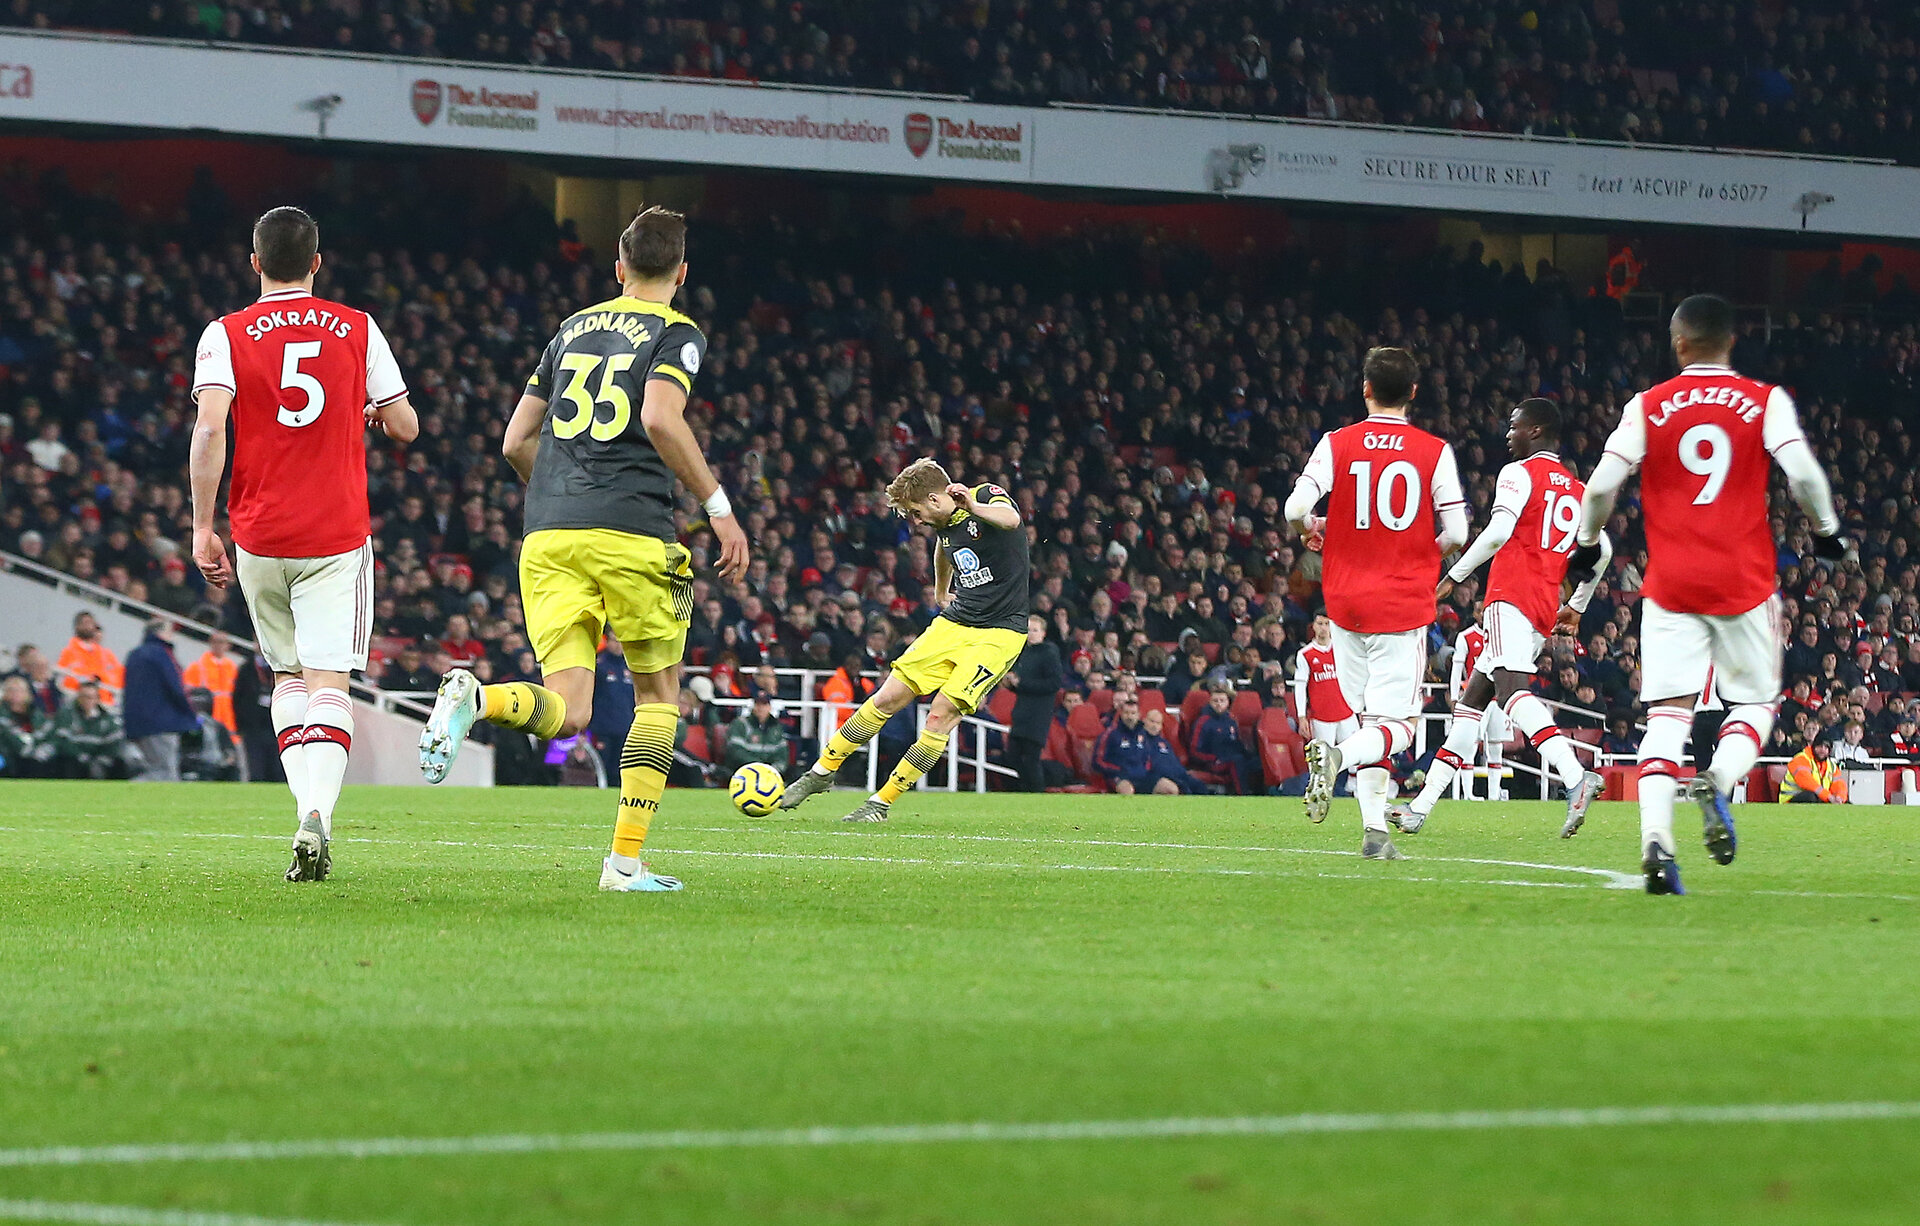 LONDON, ENGLAND - NOVEMBER 23: Stuart Armstrong of Southampton shoots at goal during the Premier League match between Arsenal FC and Southampton FC at Emirates Stadium on November 23, 2019 in London, United Kingdom. (Photo by Matt Watson/Southampton FC via Getty Images)